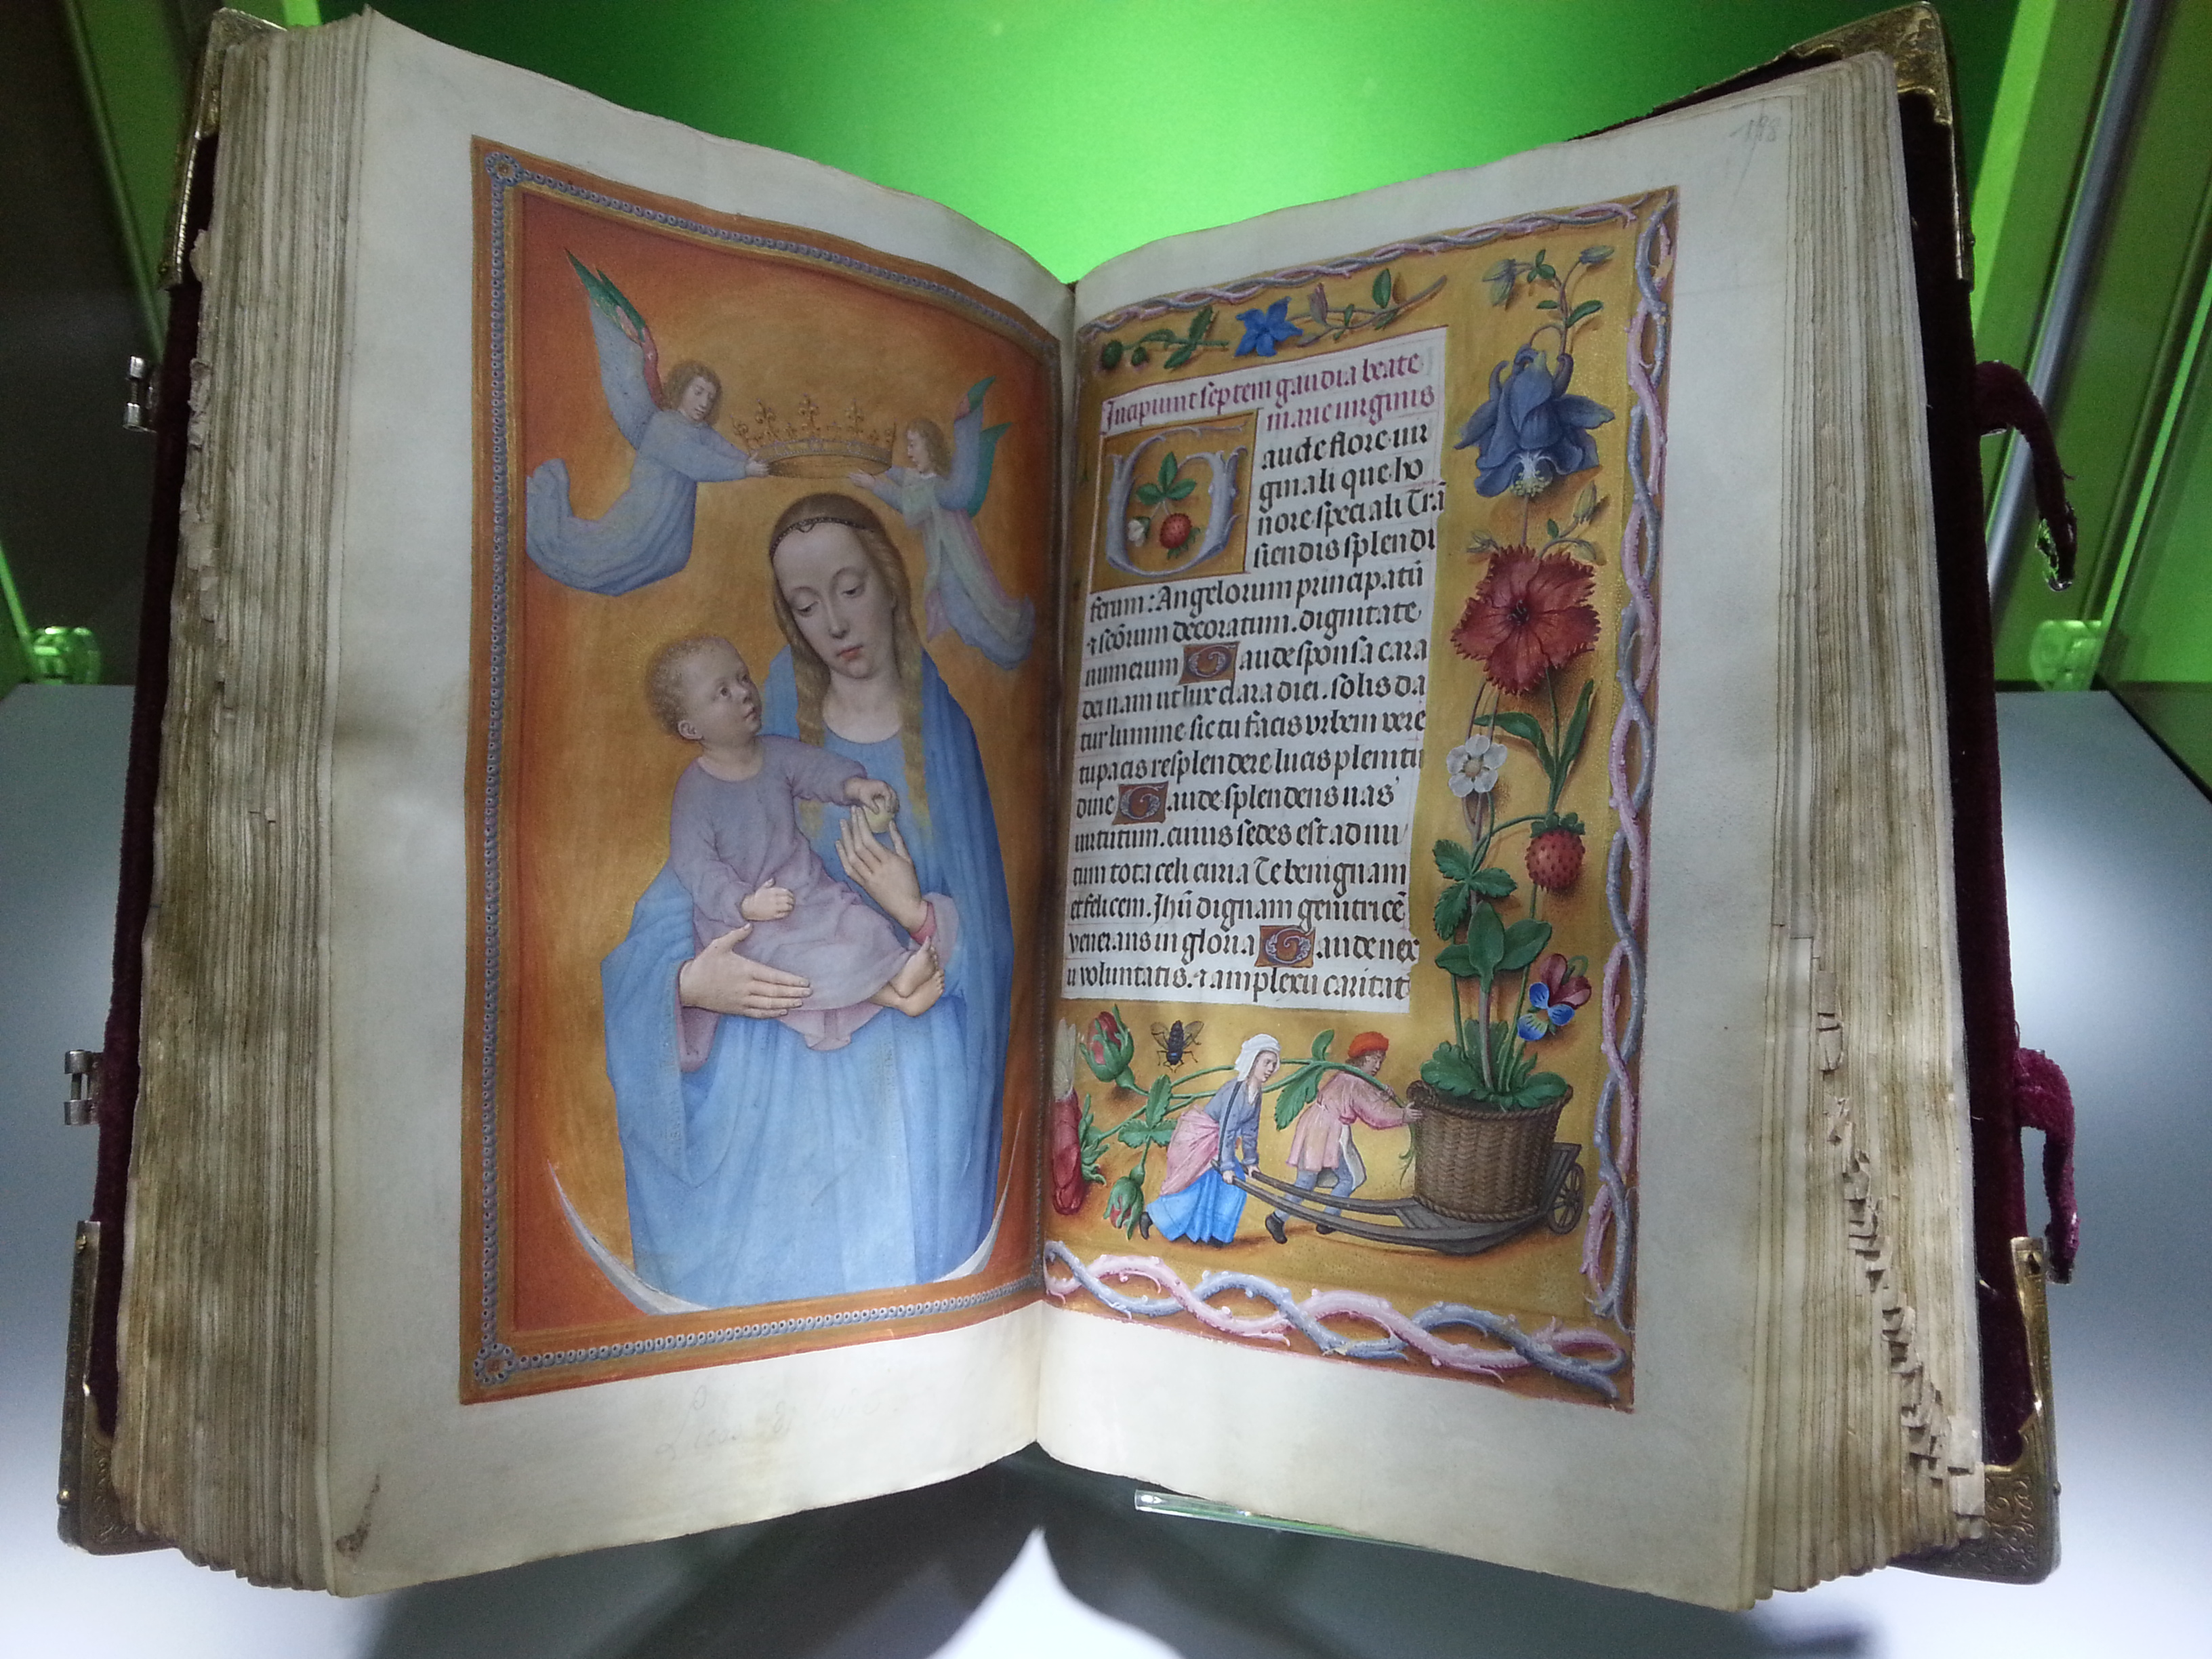 The Rothschild Prayerbook or Rothschild Hours, is an important Flemish illuminated manuscript book of hours, illuminated over the period c.1505 by a number of artists. It is now in a private collection.